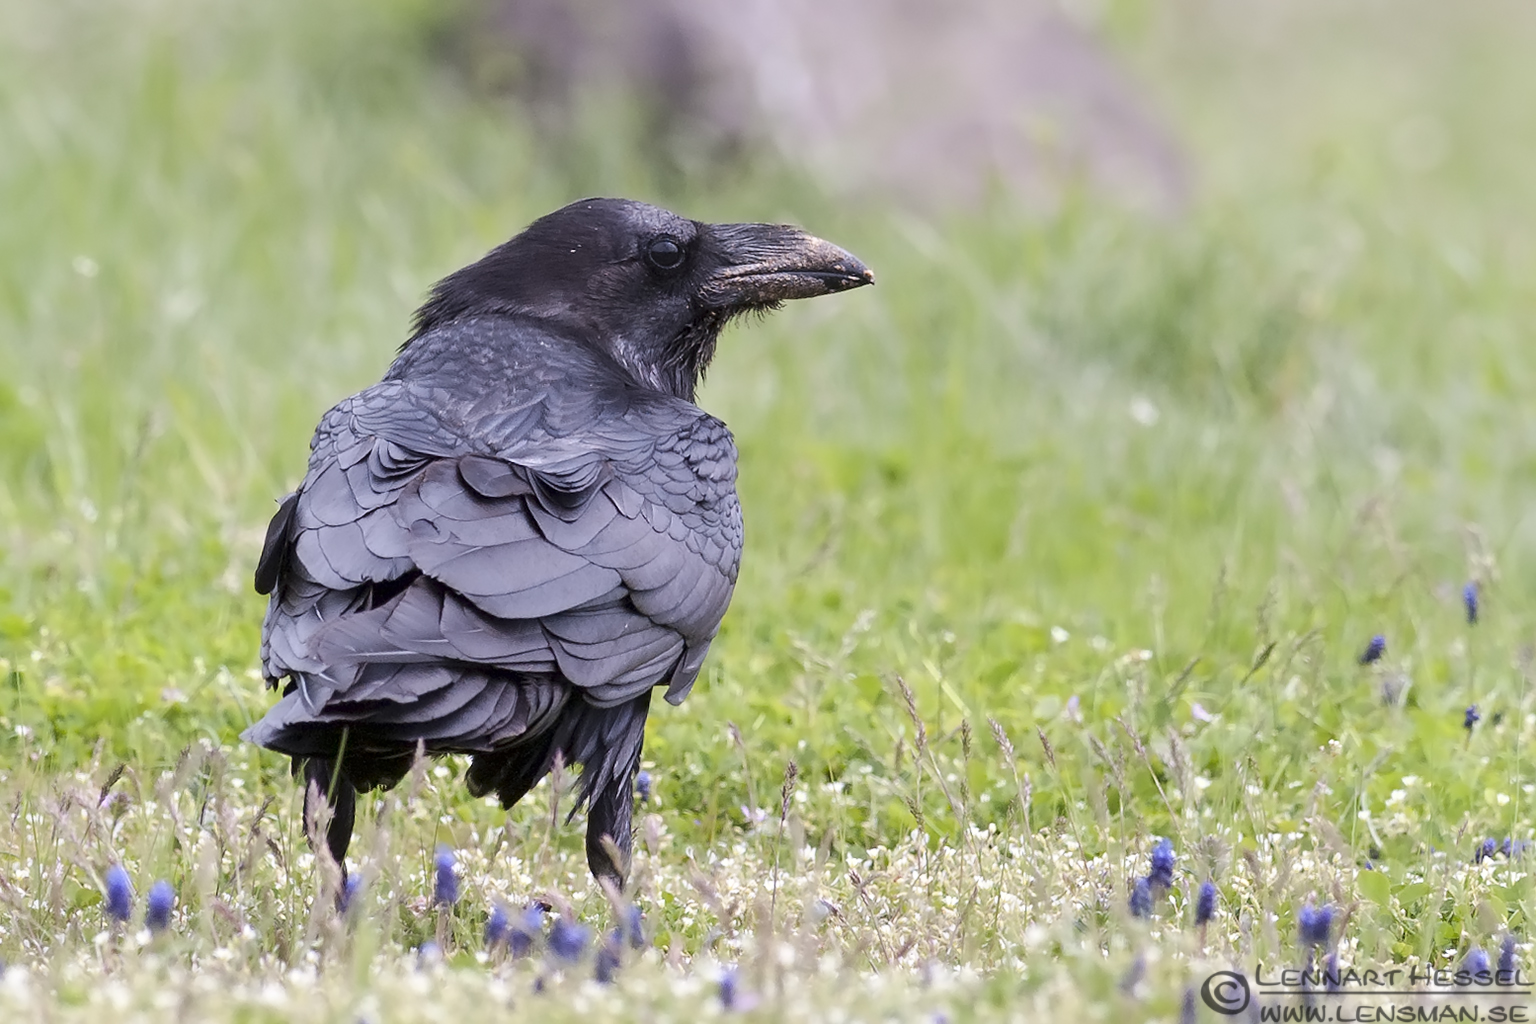 Common Raven with dirty beak in Bulgaria